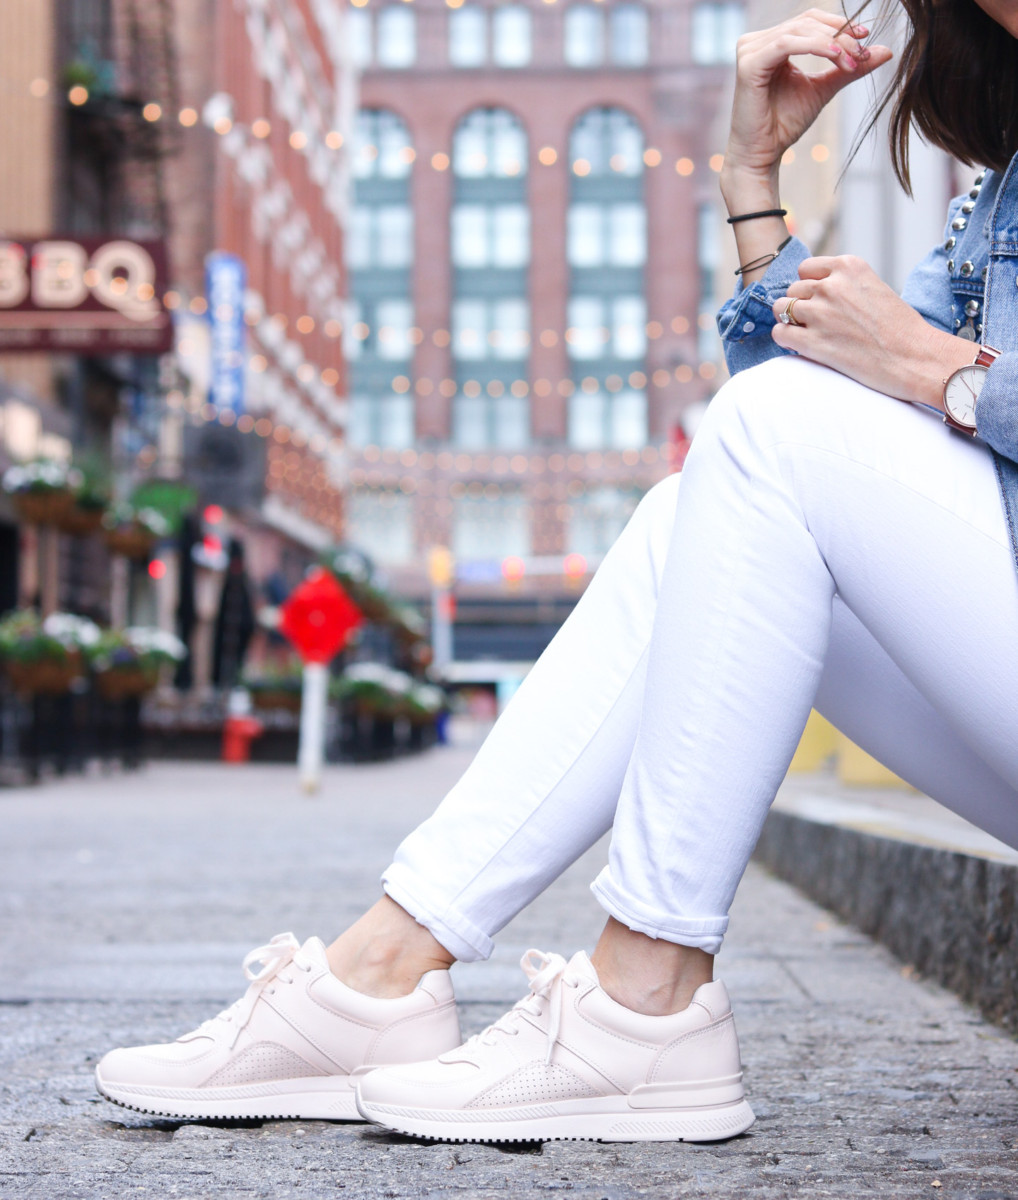 Everlane Tread Sneakers Review | Cobalt Chronicles | Houston Style Blogger